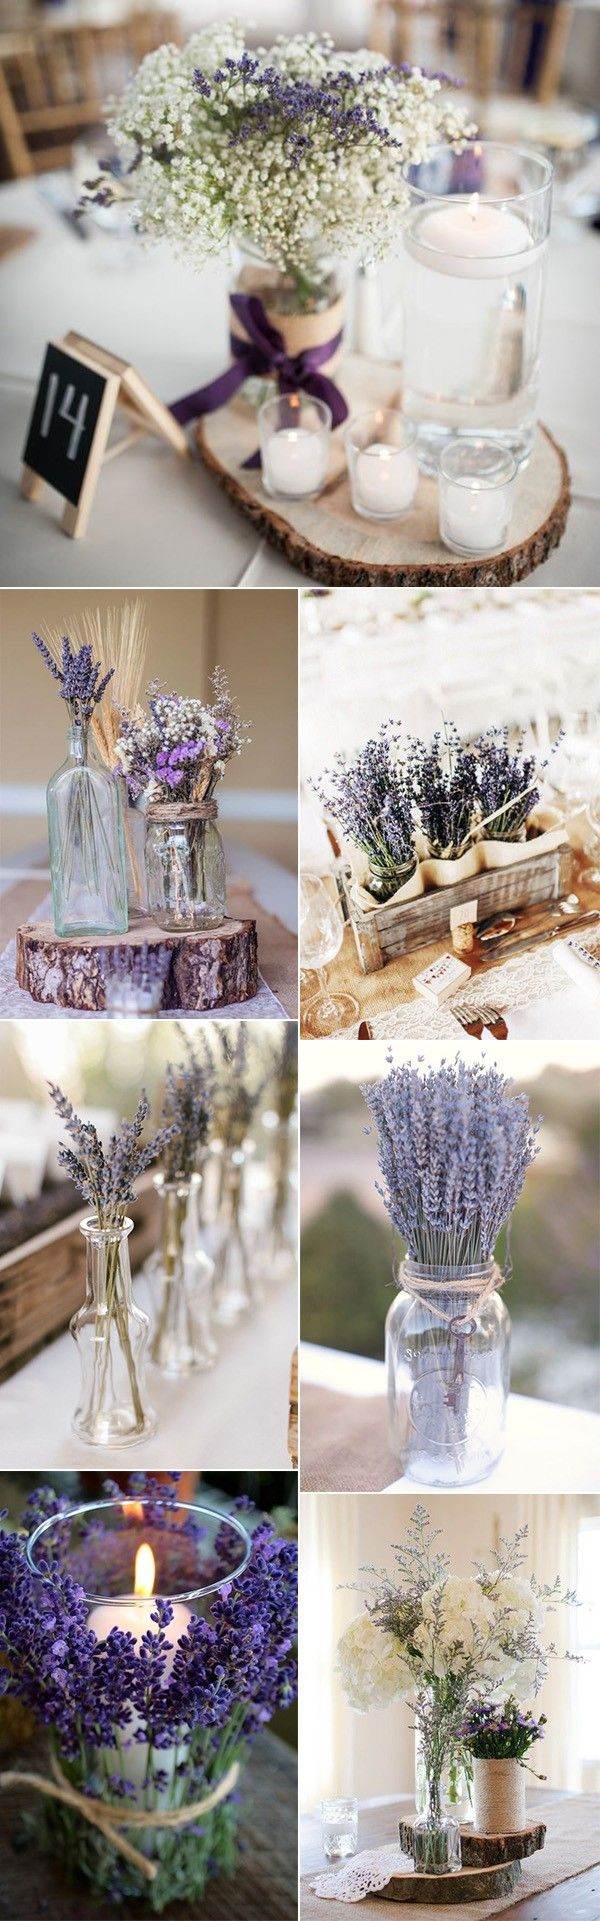 chic lavender wedding centerpiece ideas